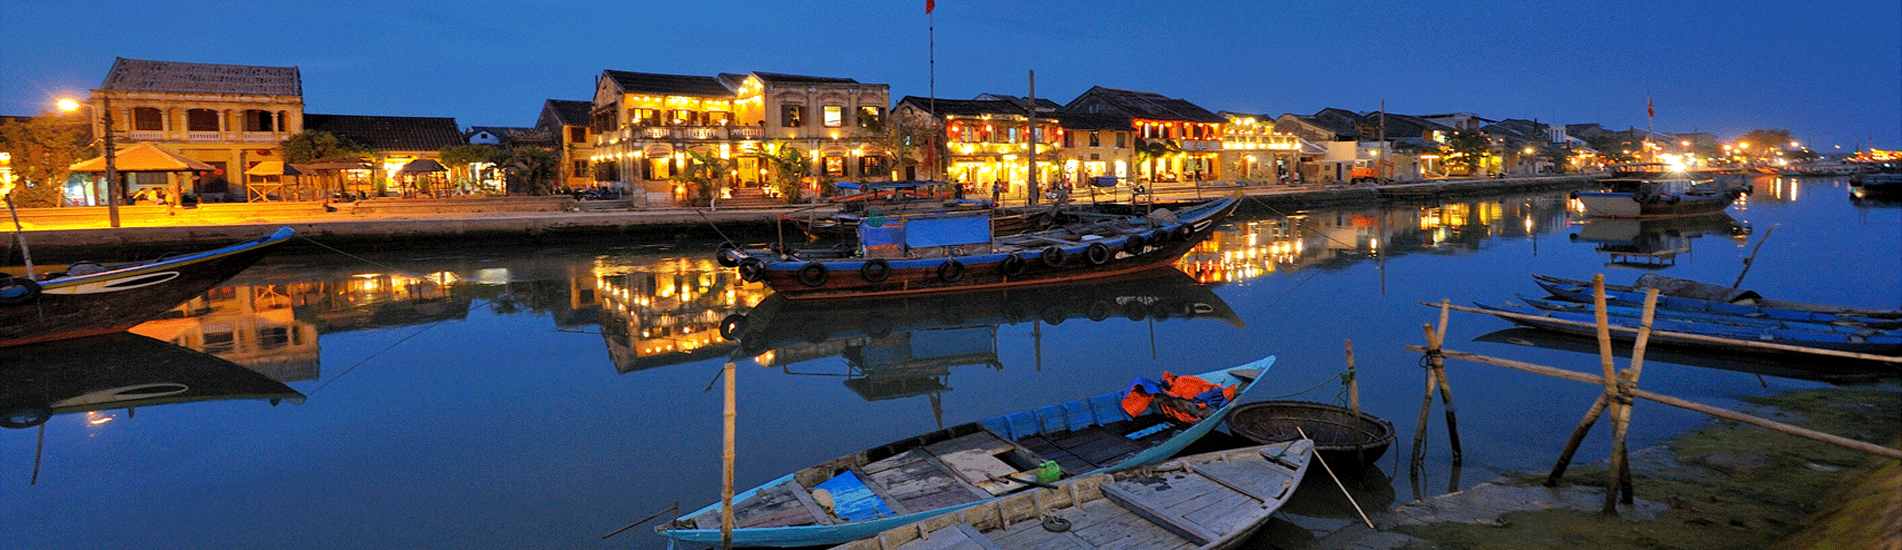 Hoi an town - World Cultural Heritage